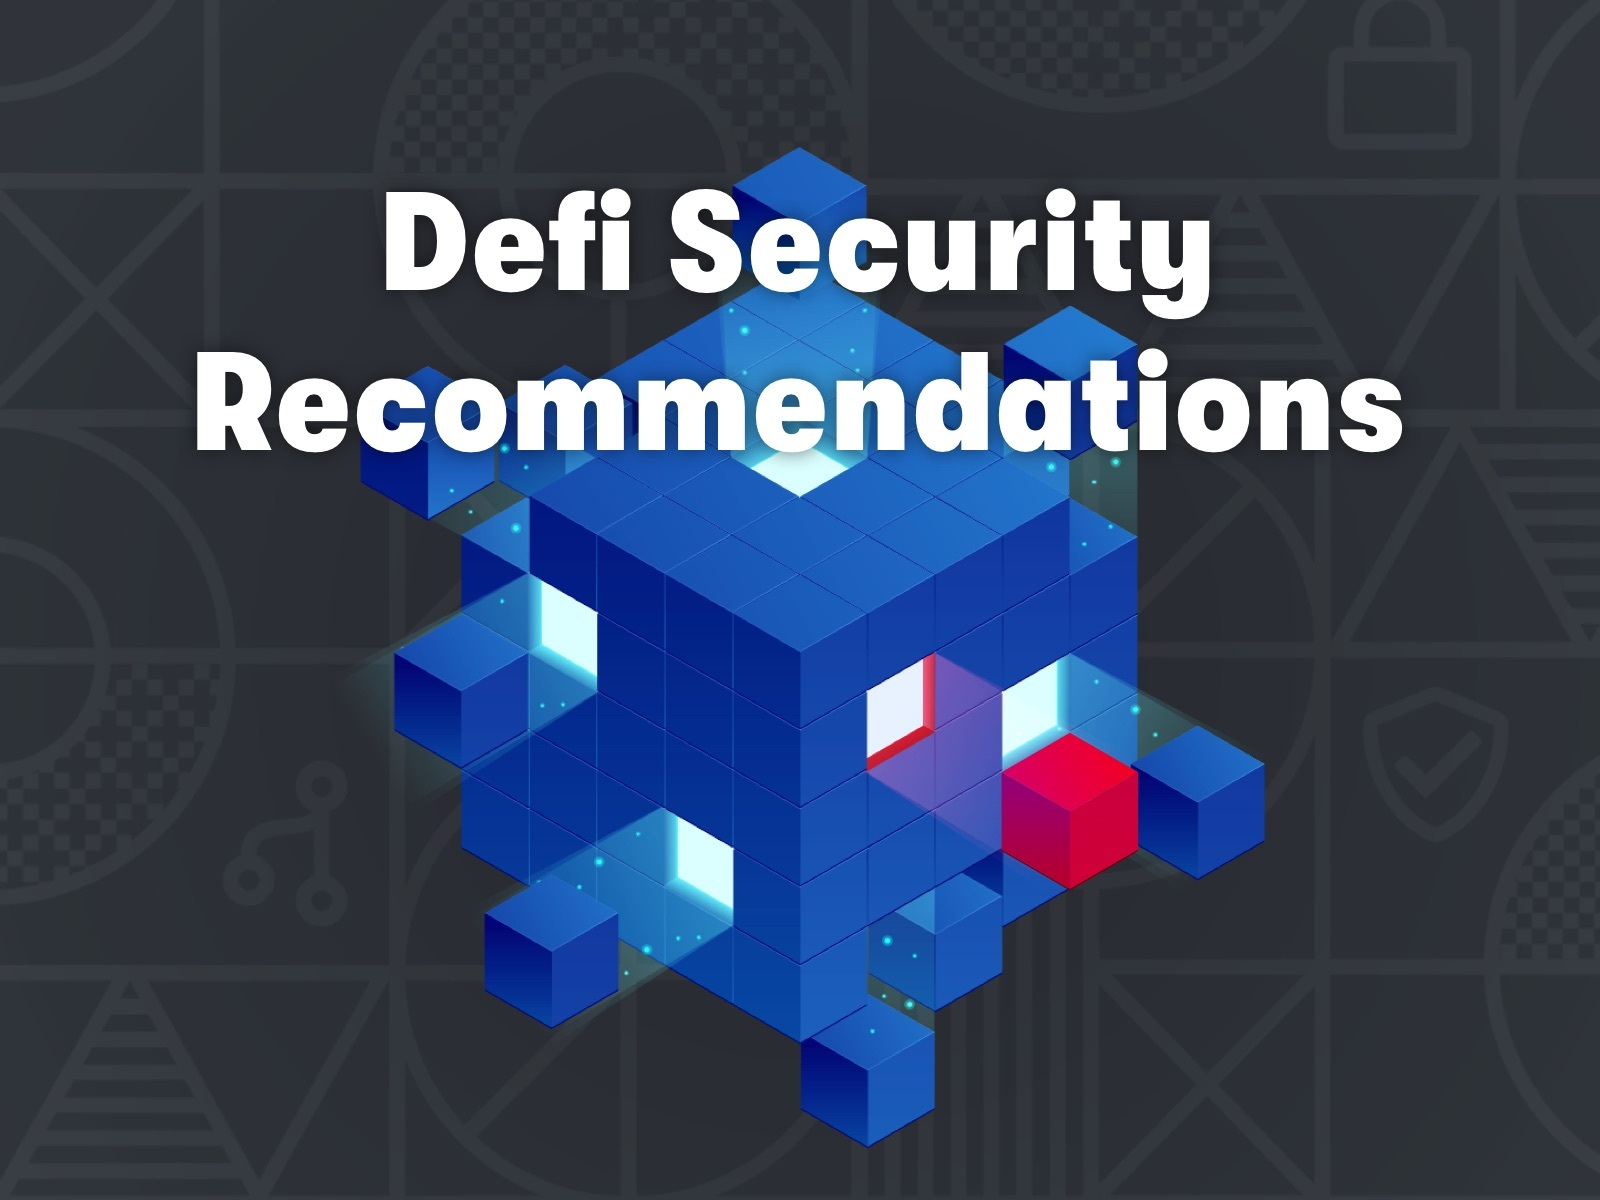 Decentralized Finance / DeFi Security Recommendations